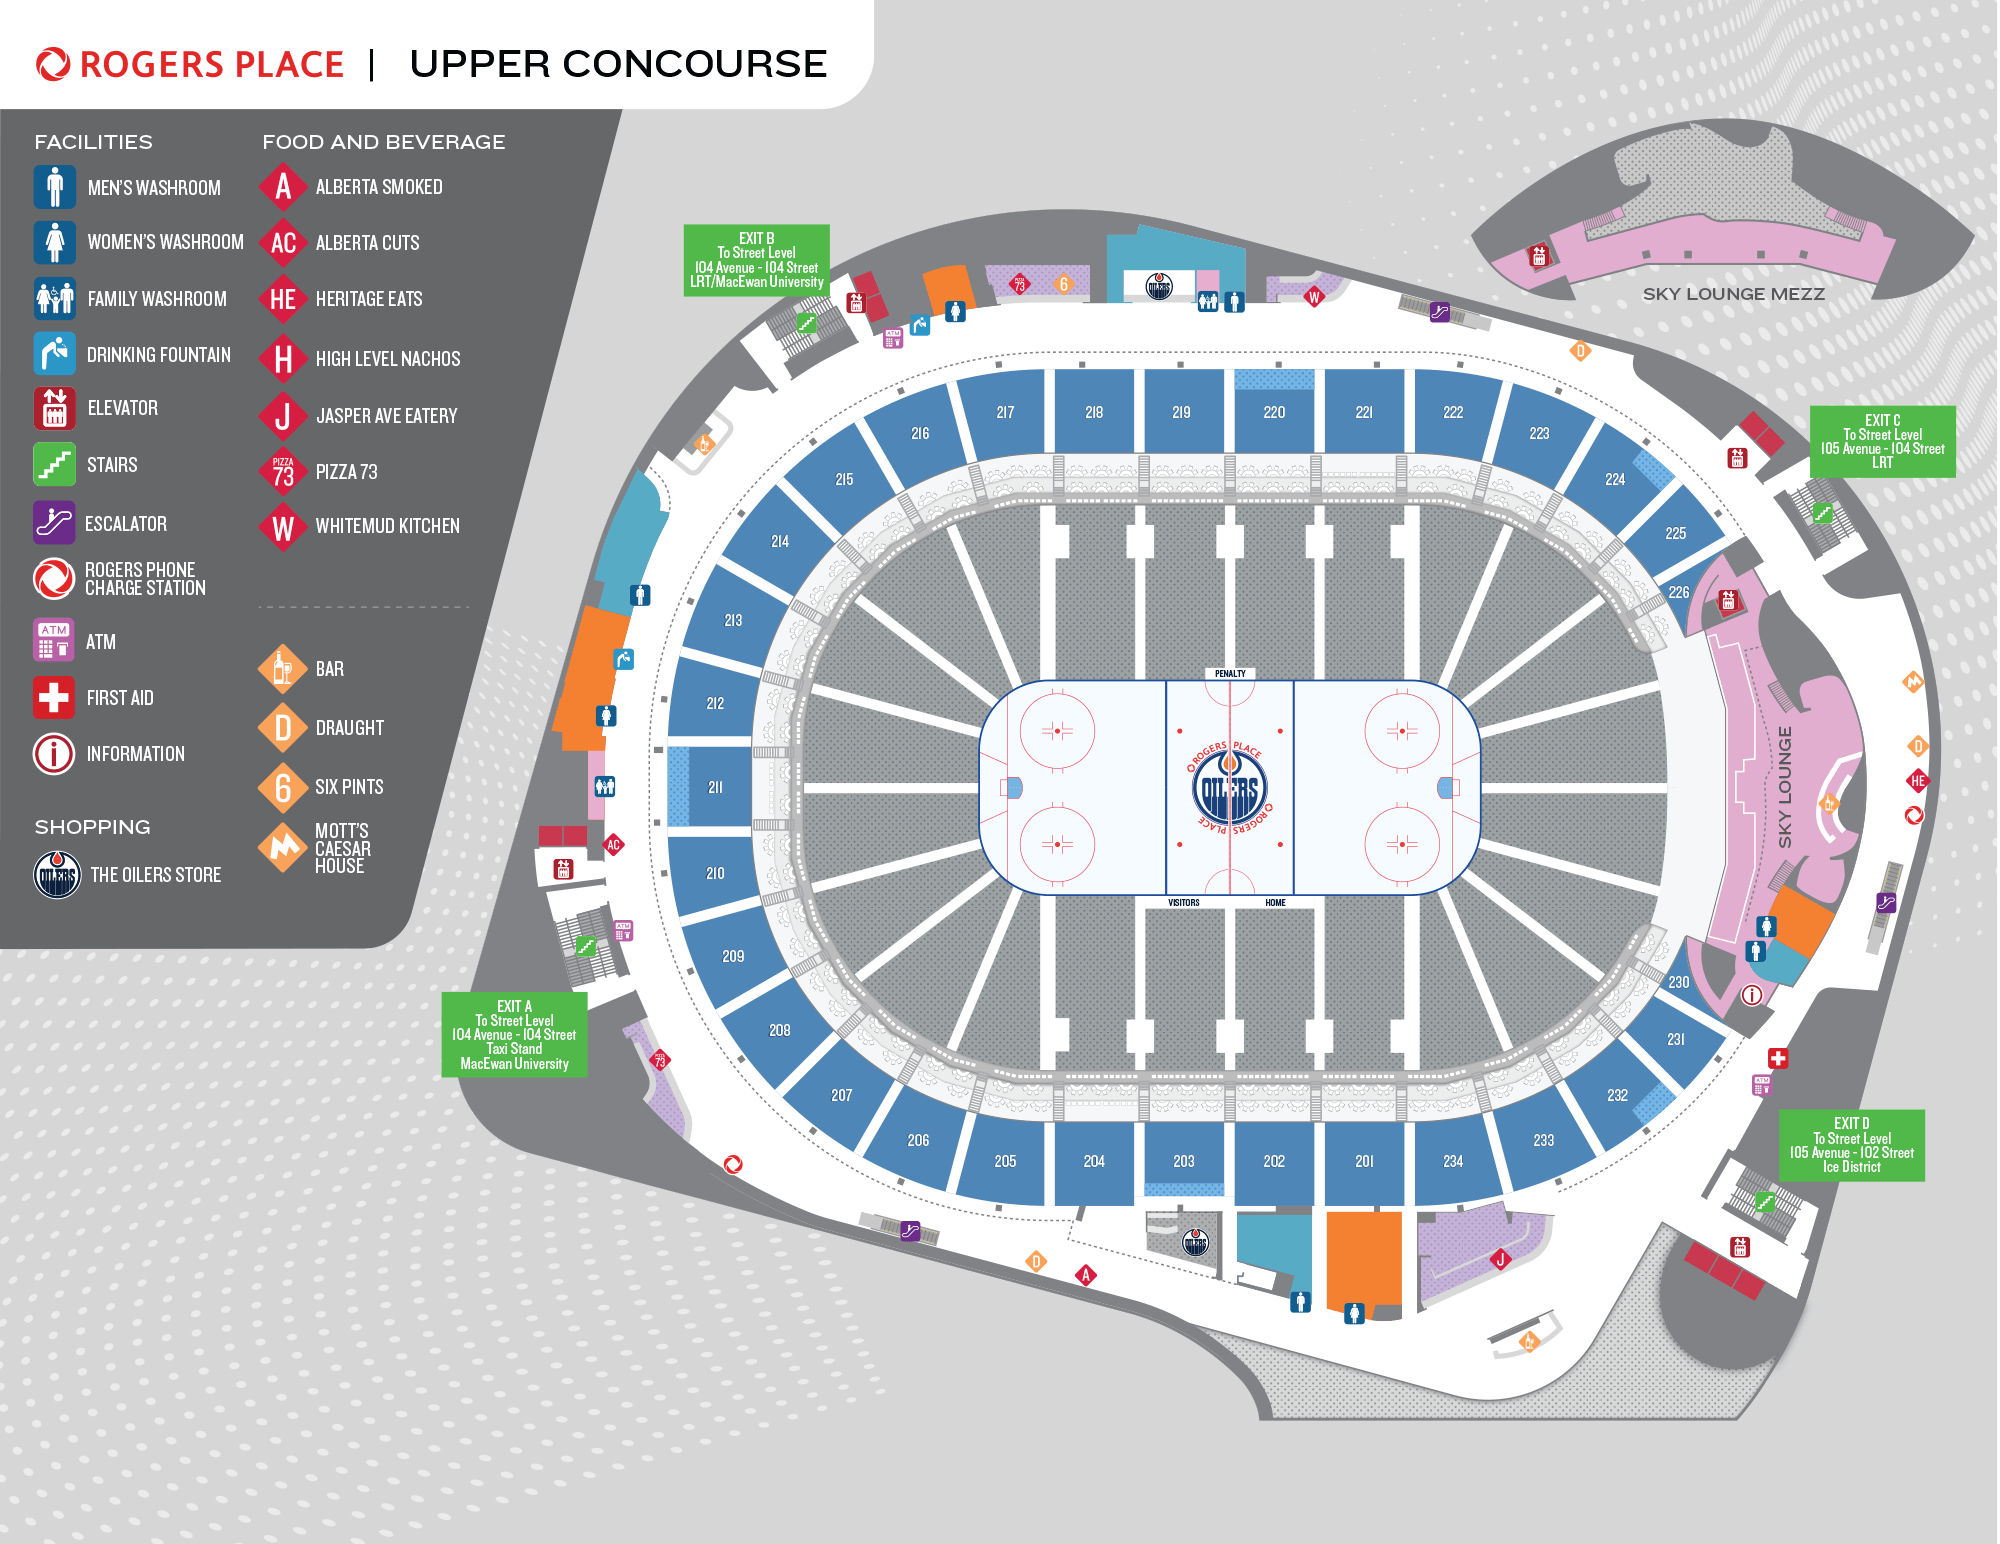 Rogers Place Upper Concourse